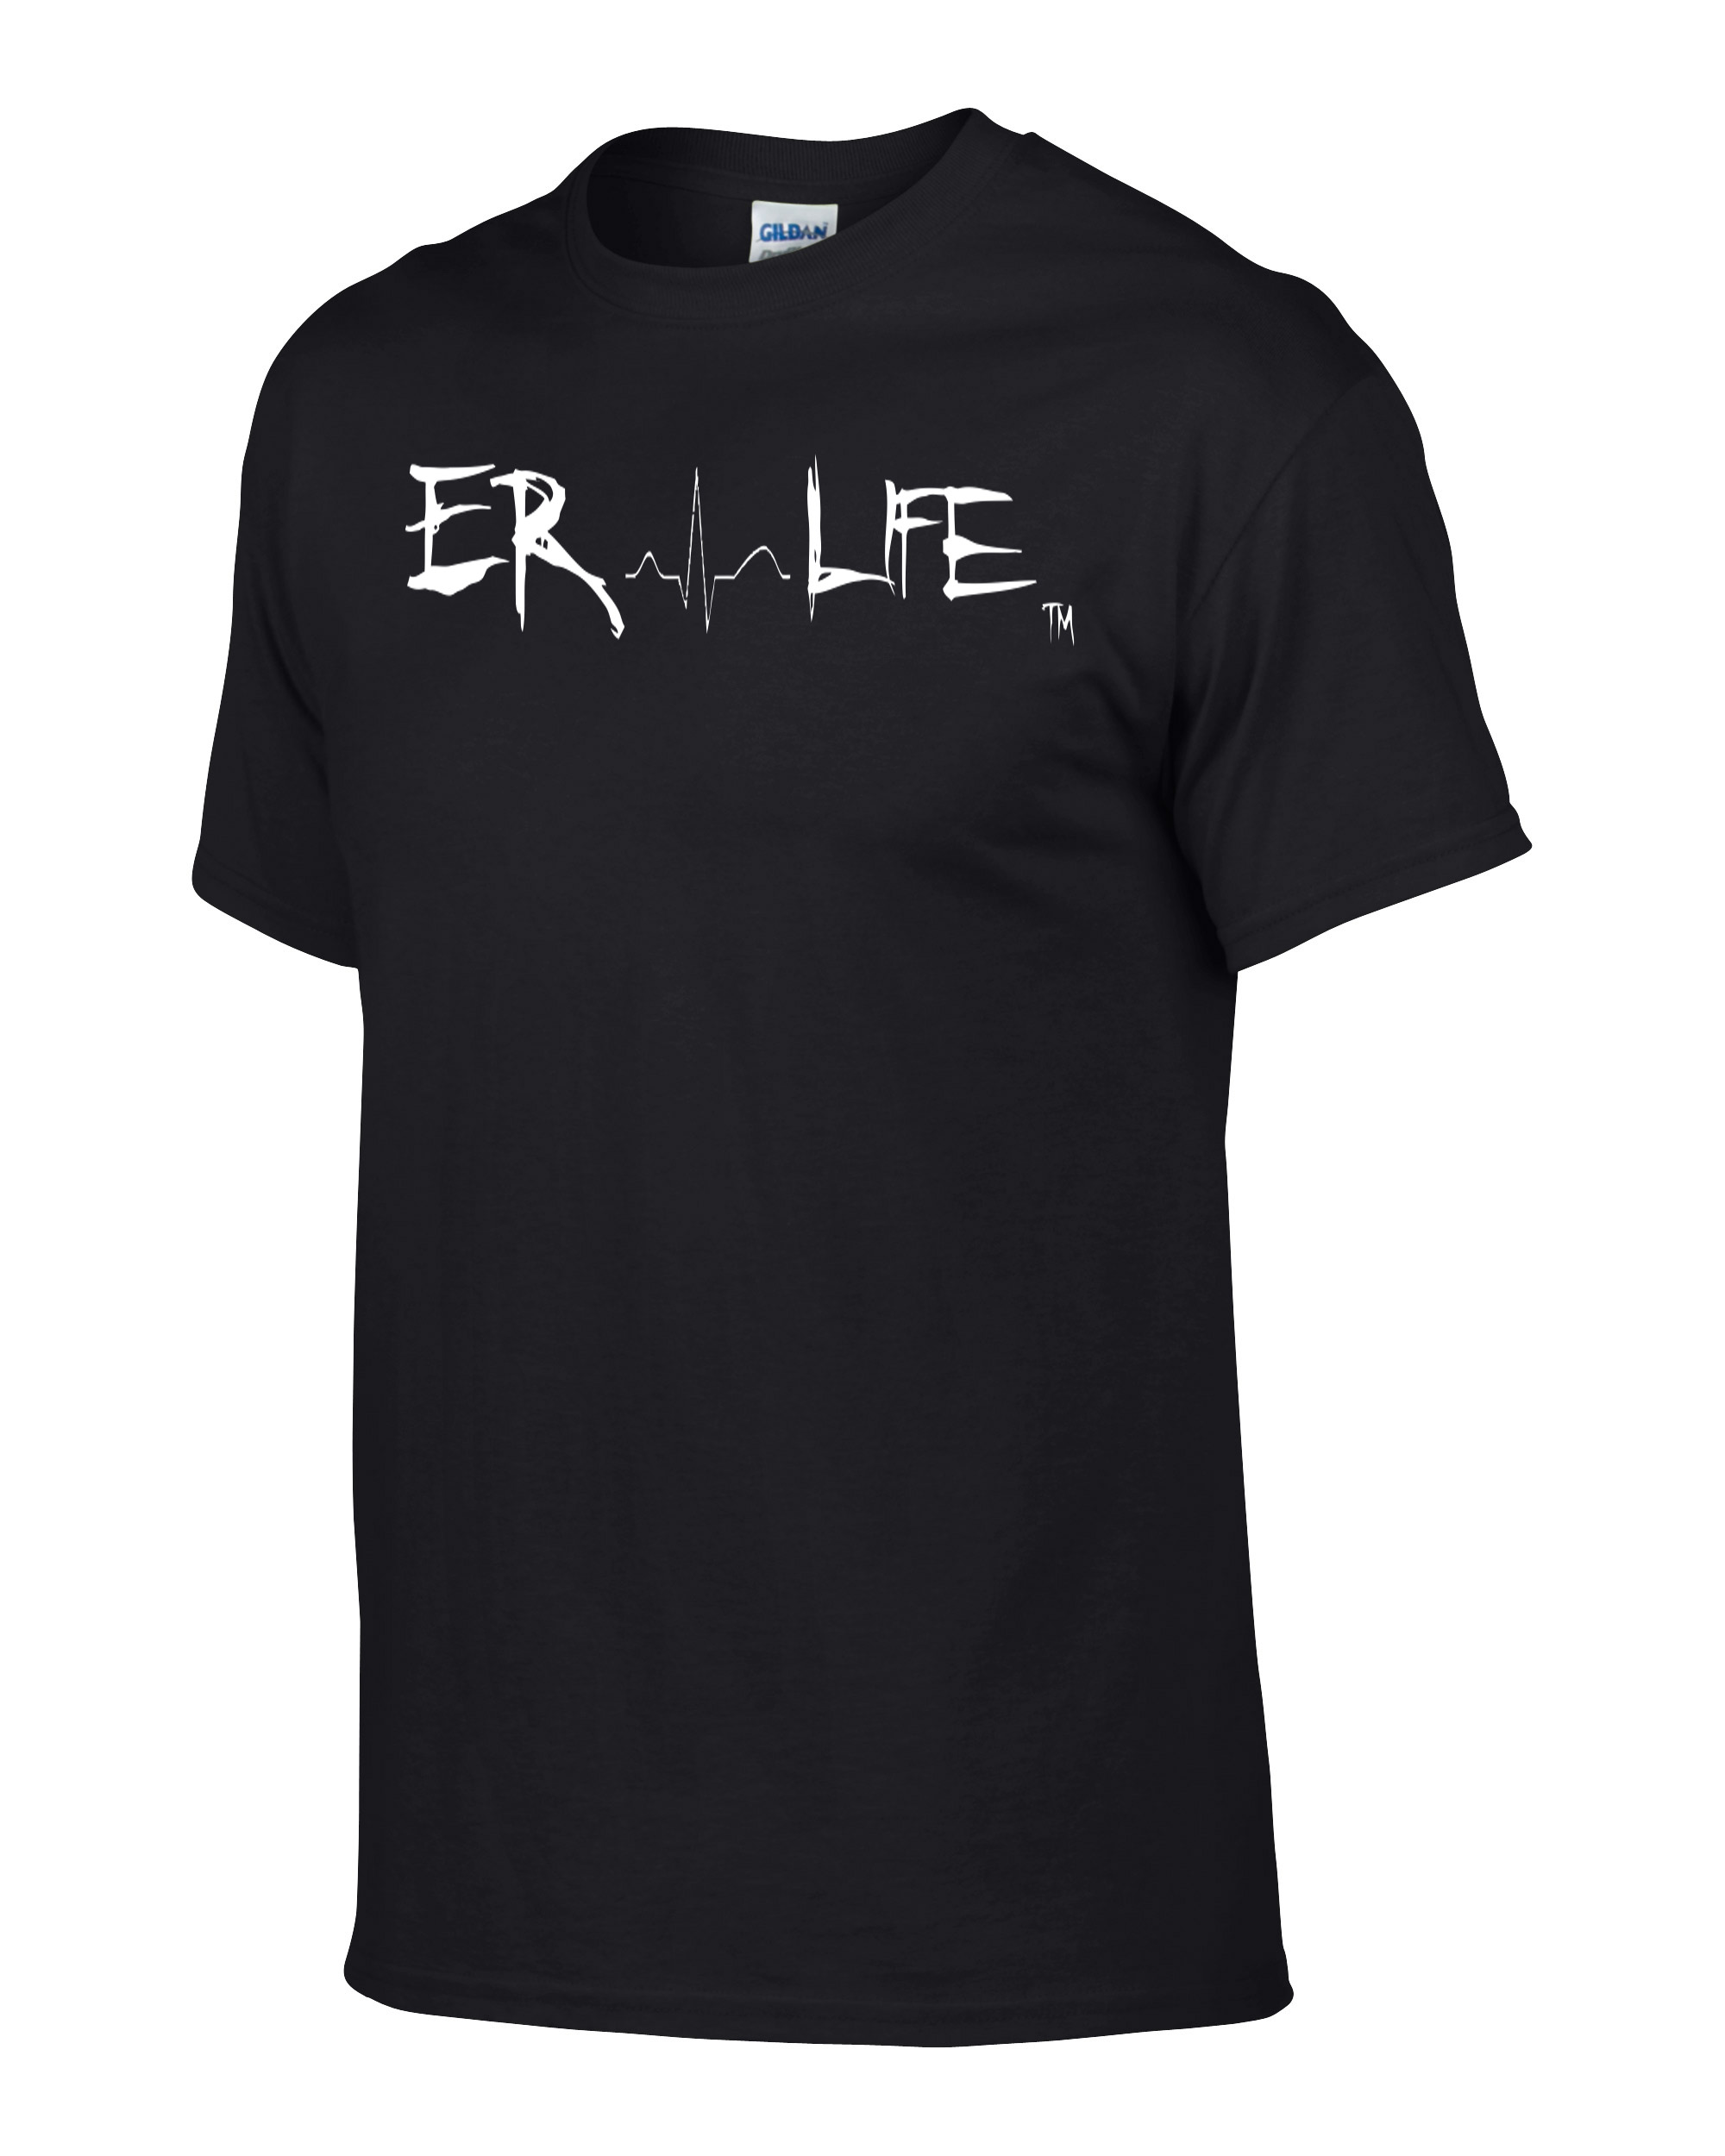 ER Life Black Shirt Side